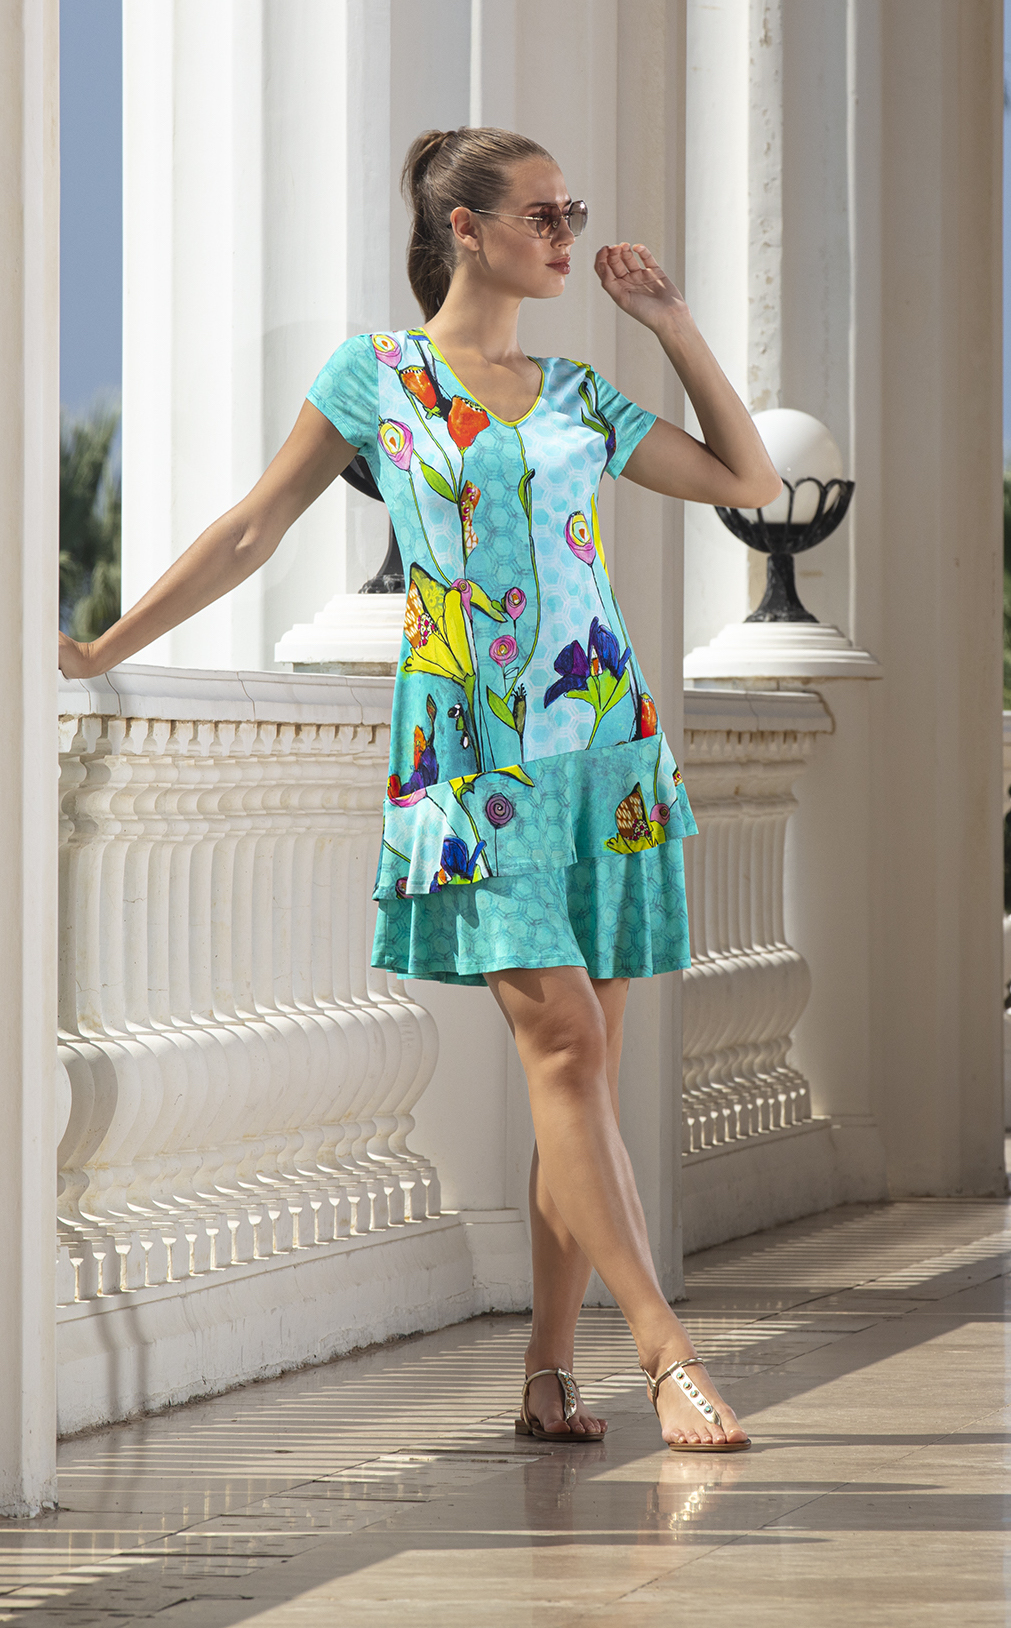 Simply Art Dolcezza: Summer's Coming Grand Bouquet Ruffled Art Dress (2 Left!) DOLCEZZA_SIMPLYART_20744